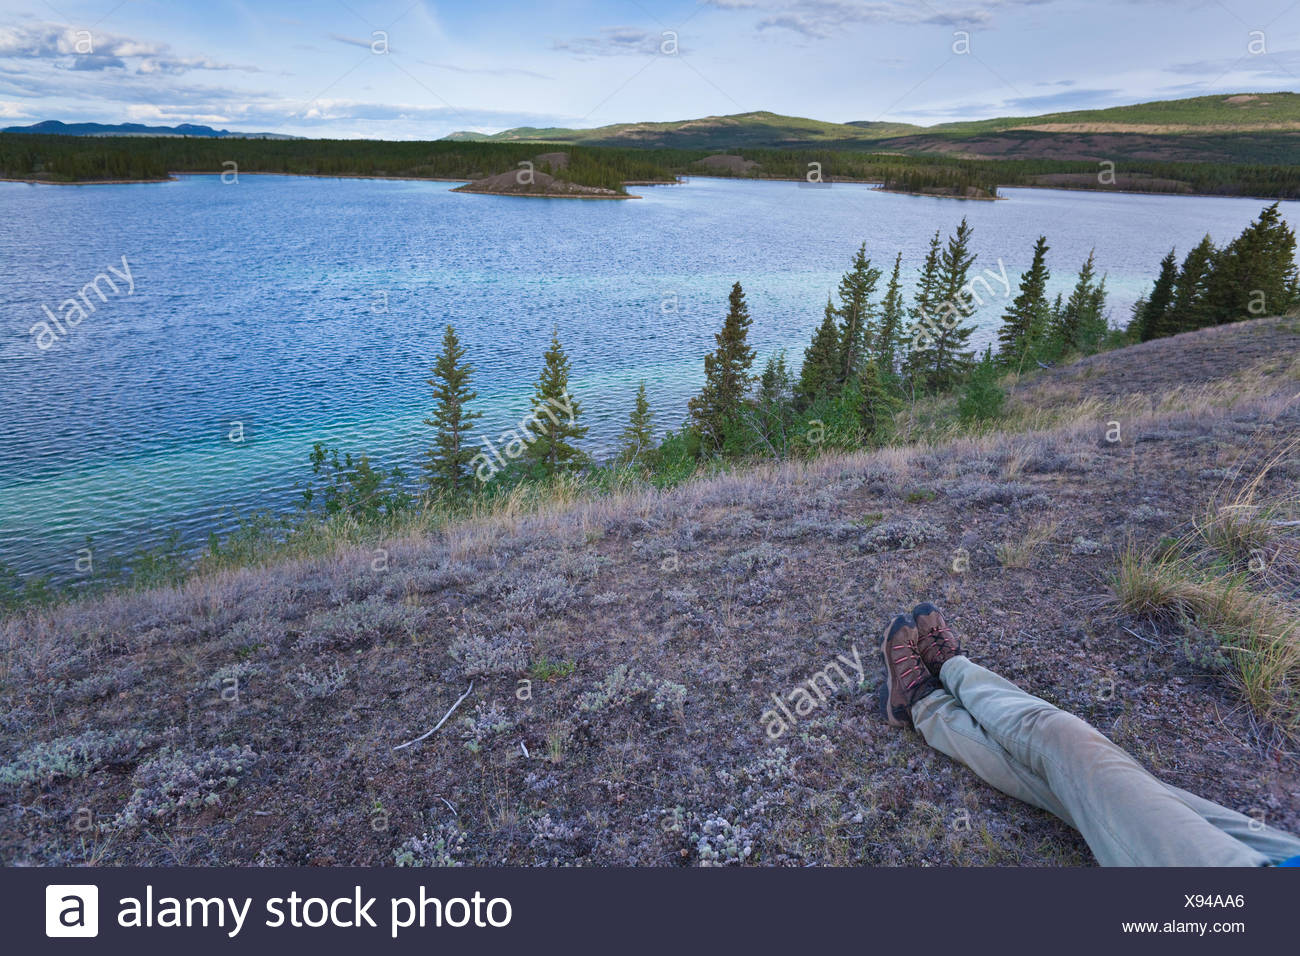 Hiker taking a rest - Stock Image